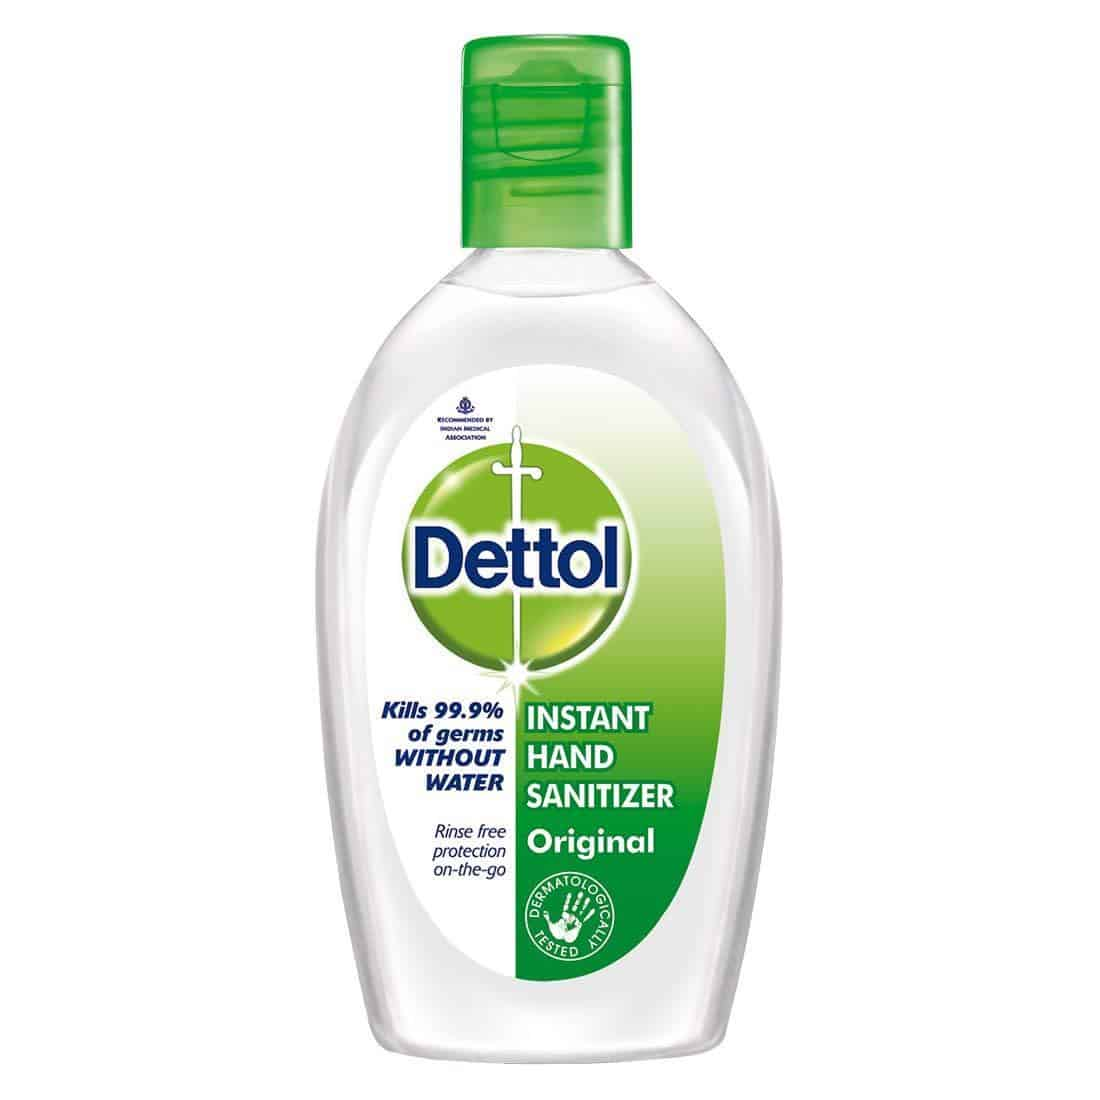 Dettol Antibacterial Hand Sanitizer is the Best Hand Sanitizers in Singapore, Aloe Vera is handy, travel size hand gel, its great for disinfecting masks and furniture and everything else at home and when in office